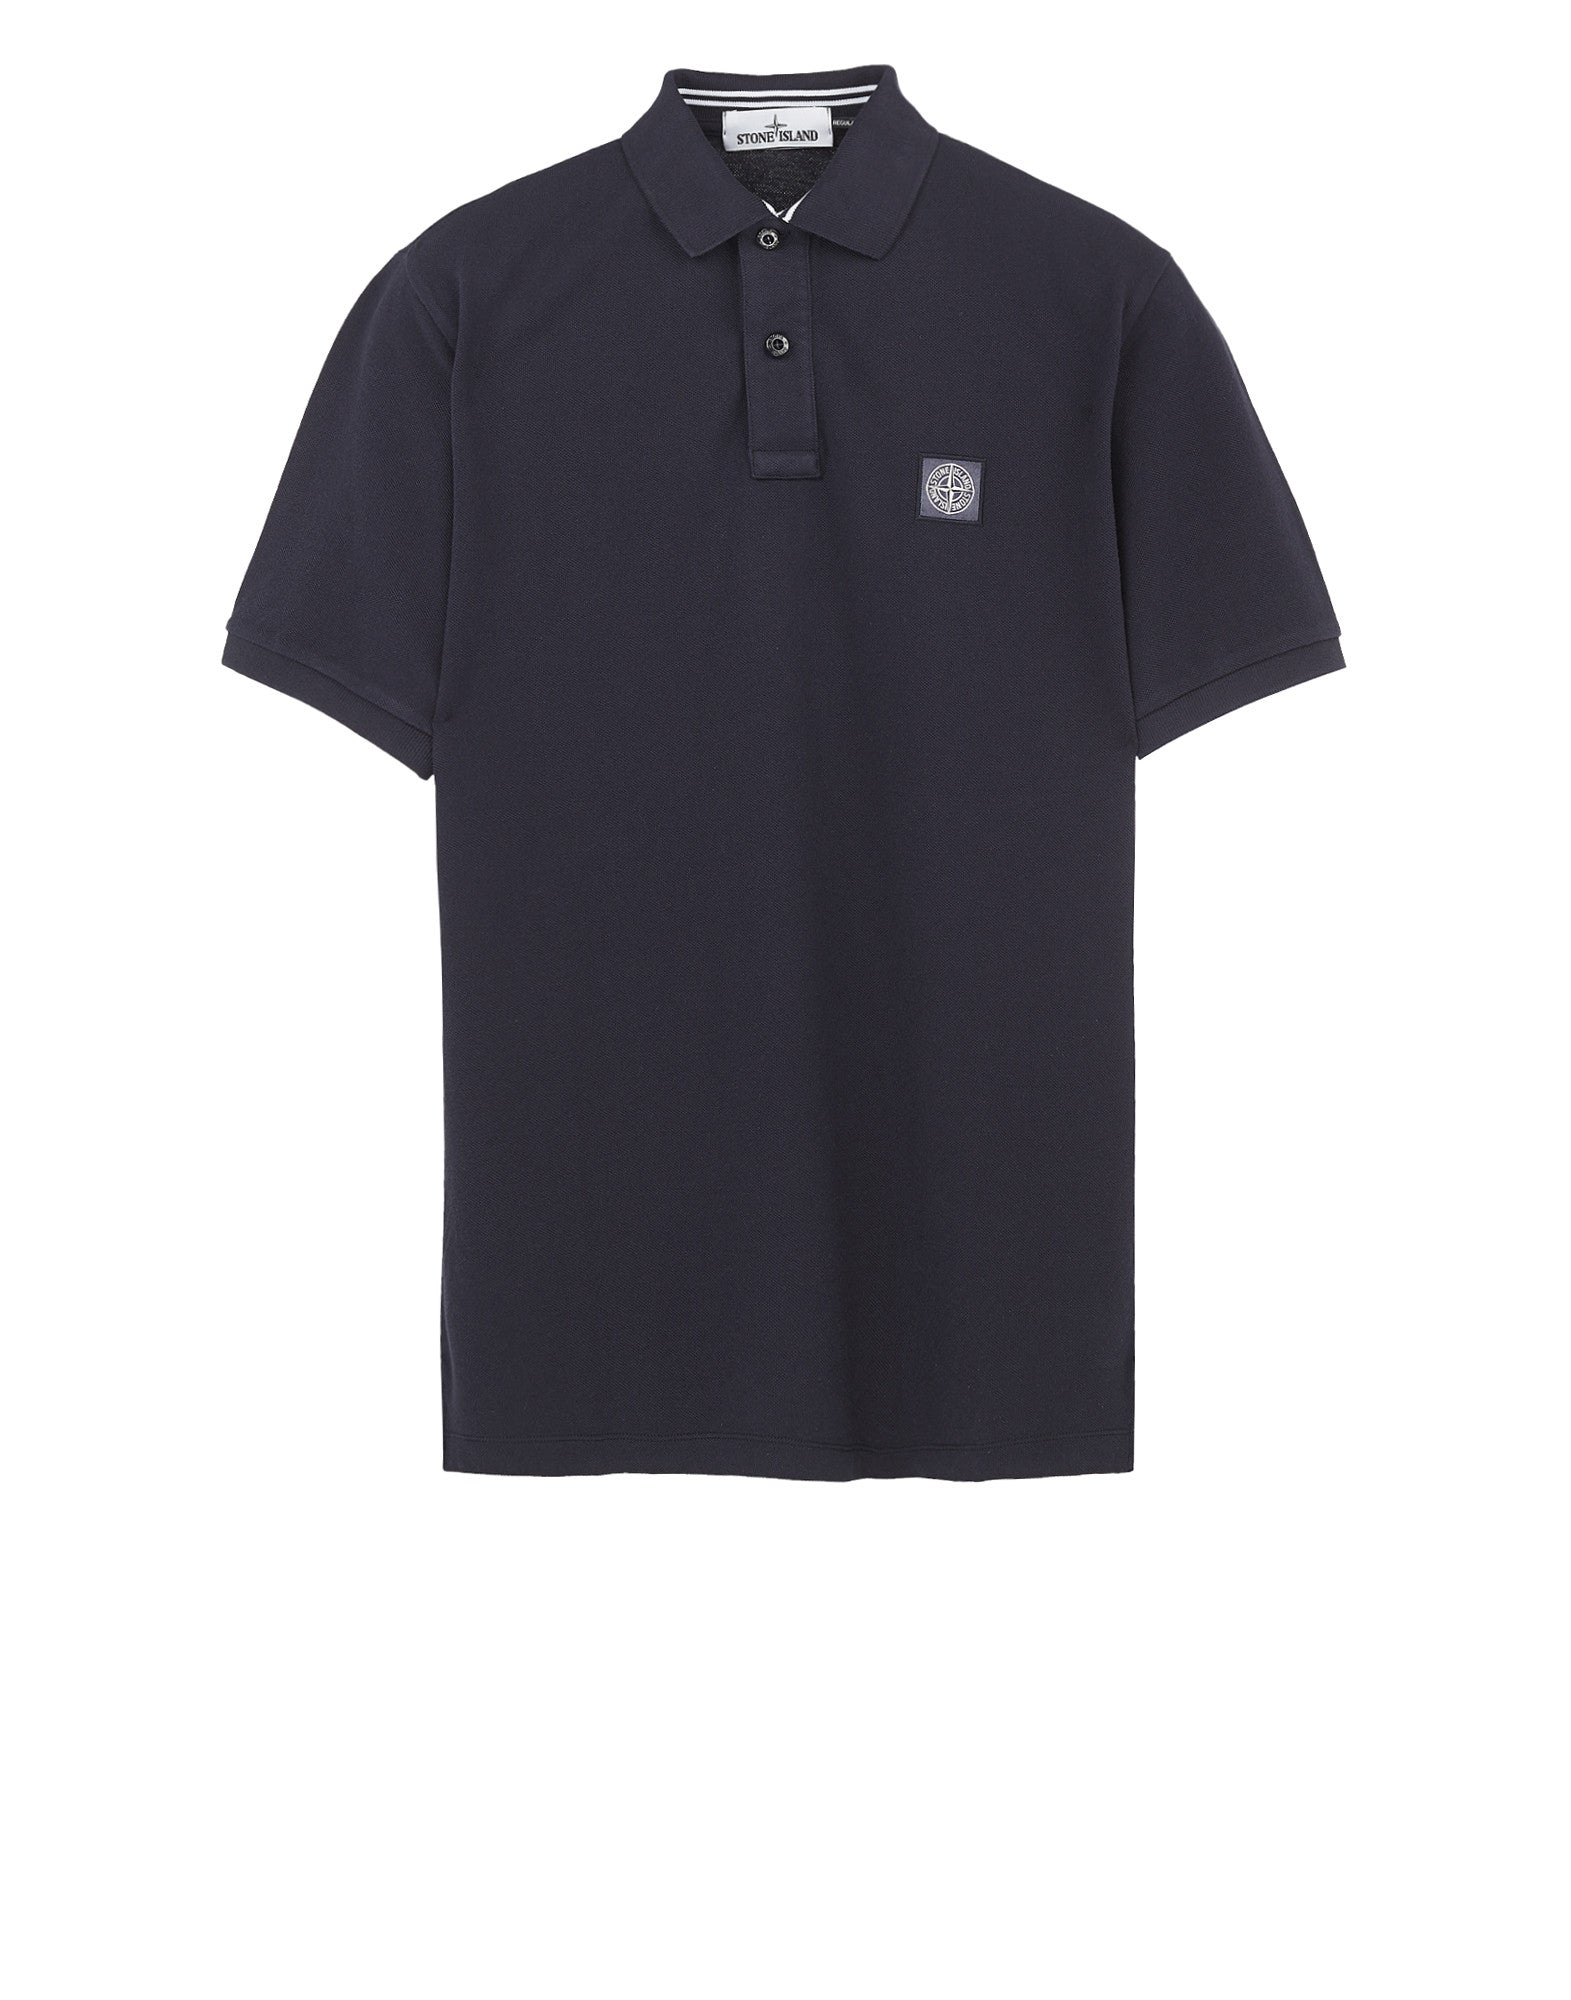 22C15 Cotton Pique Polo Shirt in Navy Blue